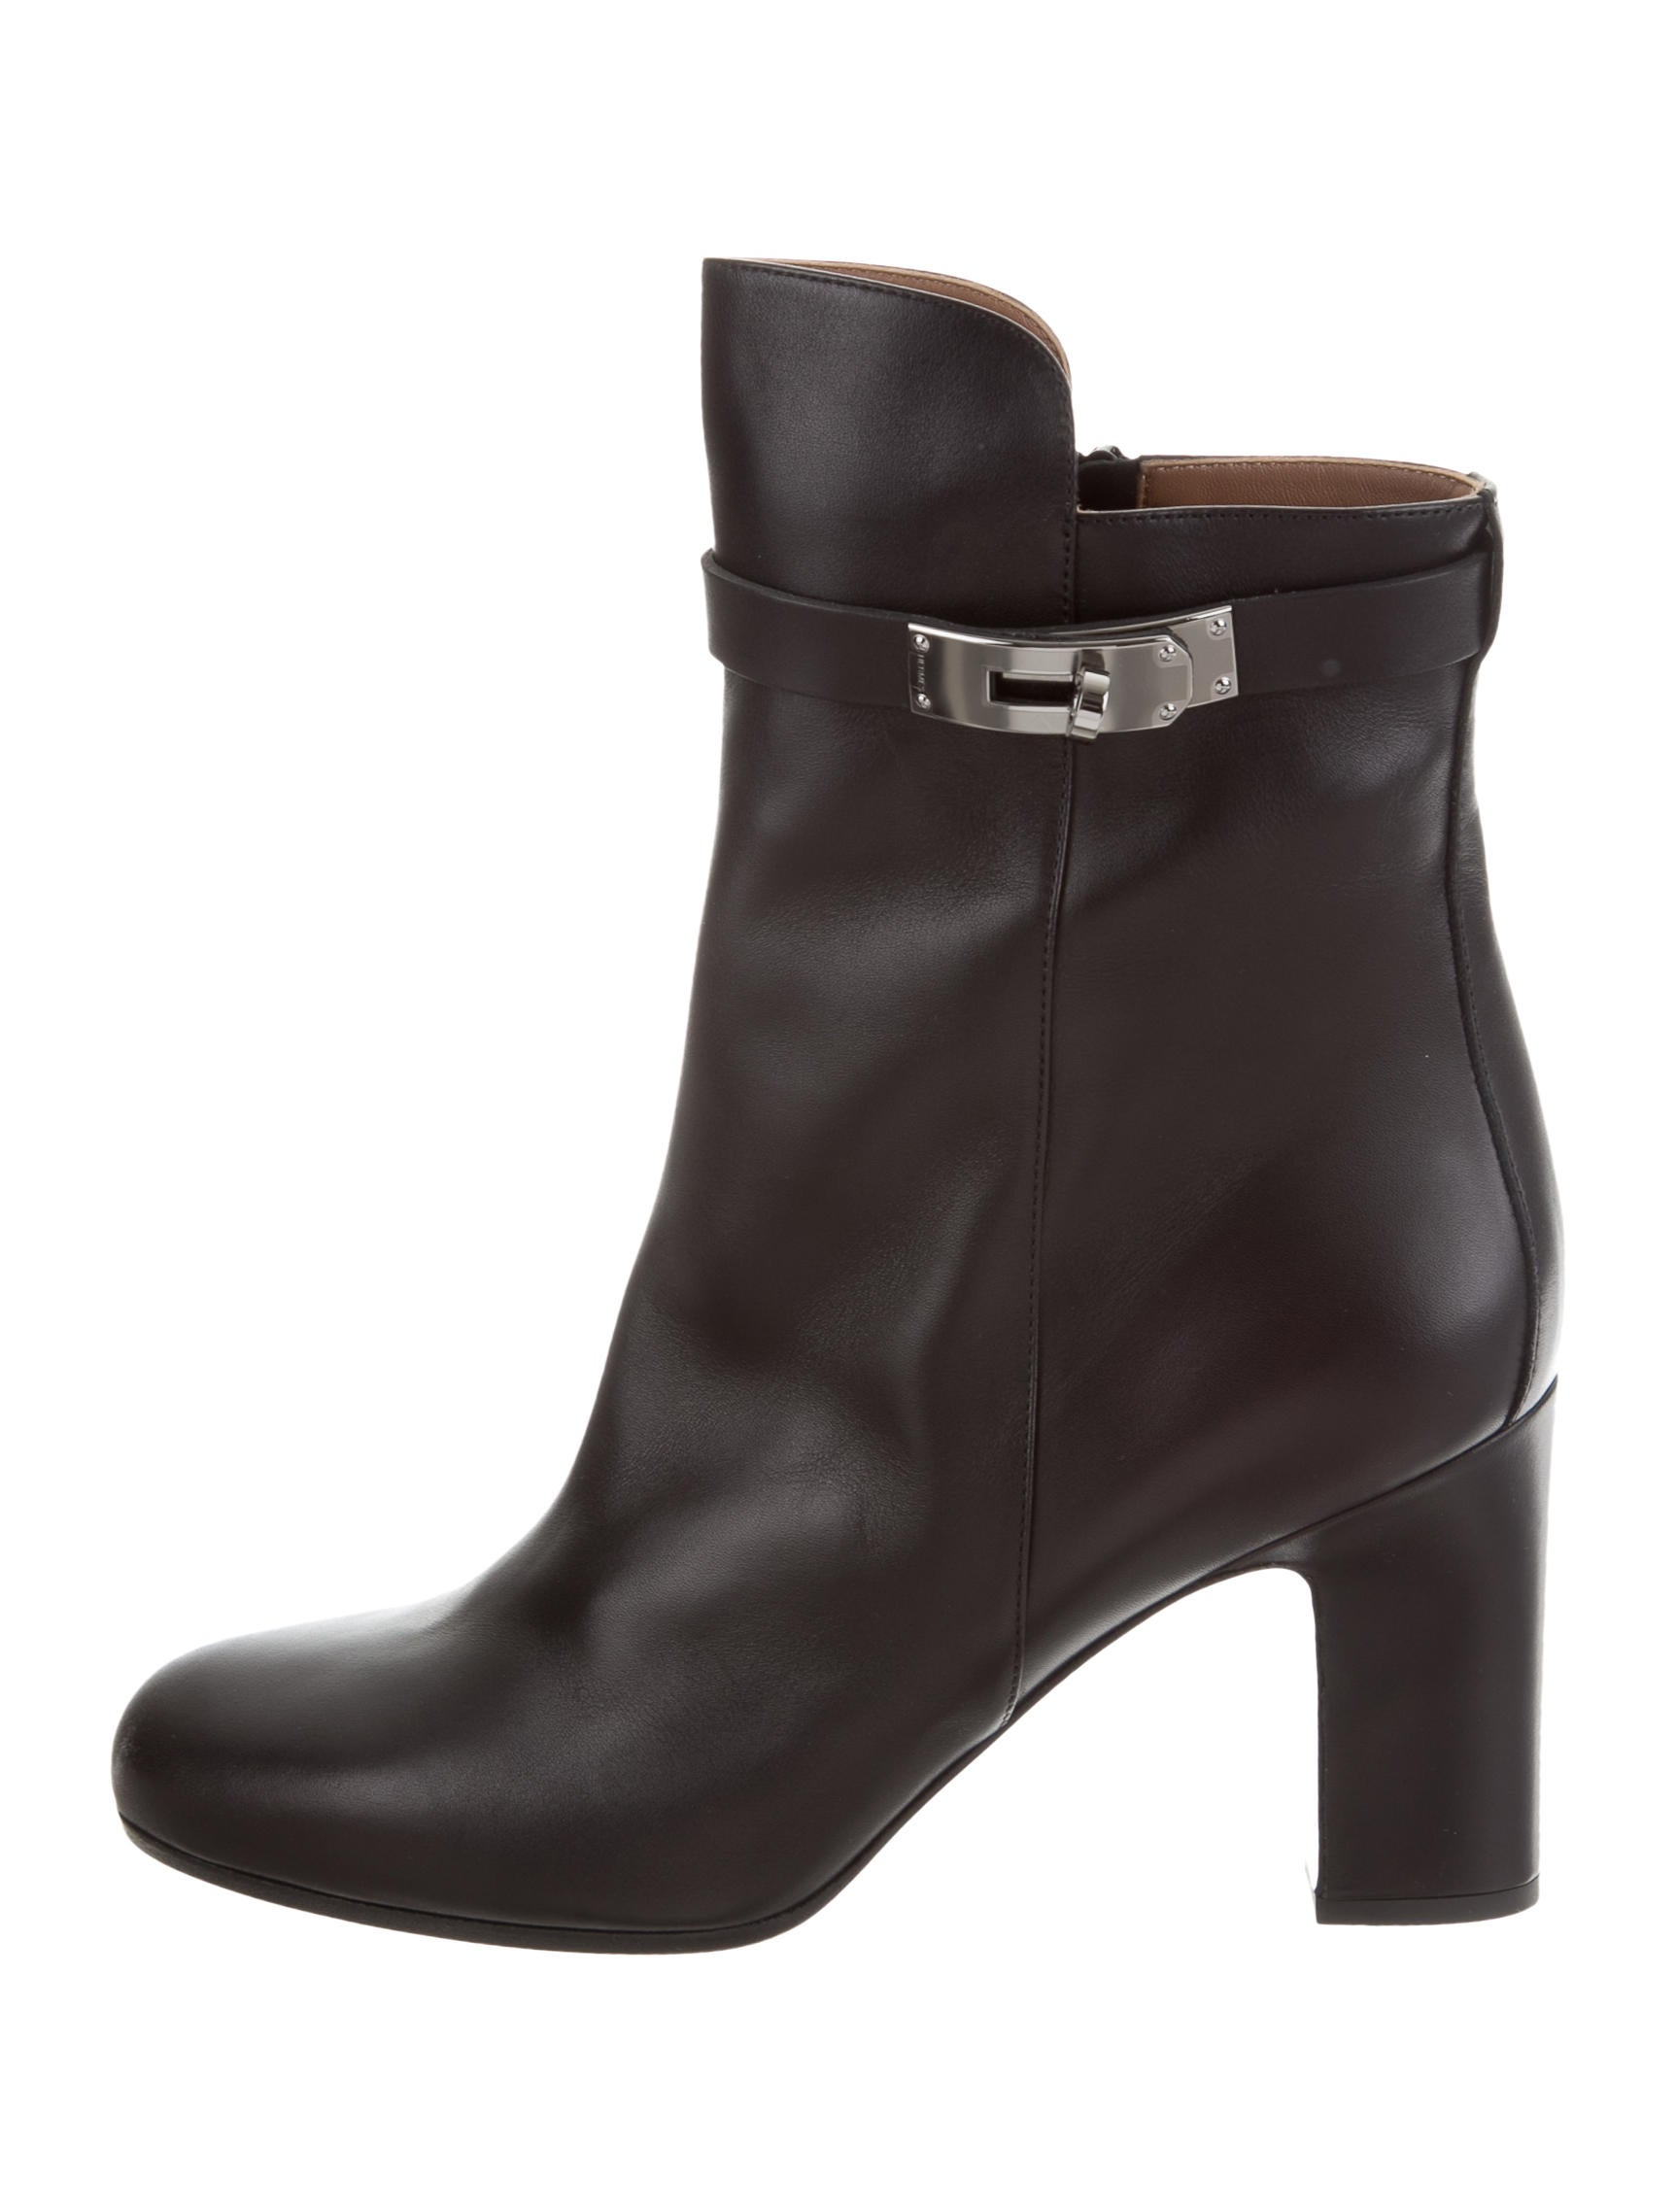 free shipping get authentic discount sast Hermès Joueuse Round-Toe Ankle Boots cheap sale excellent pDV1b